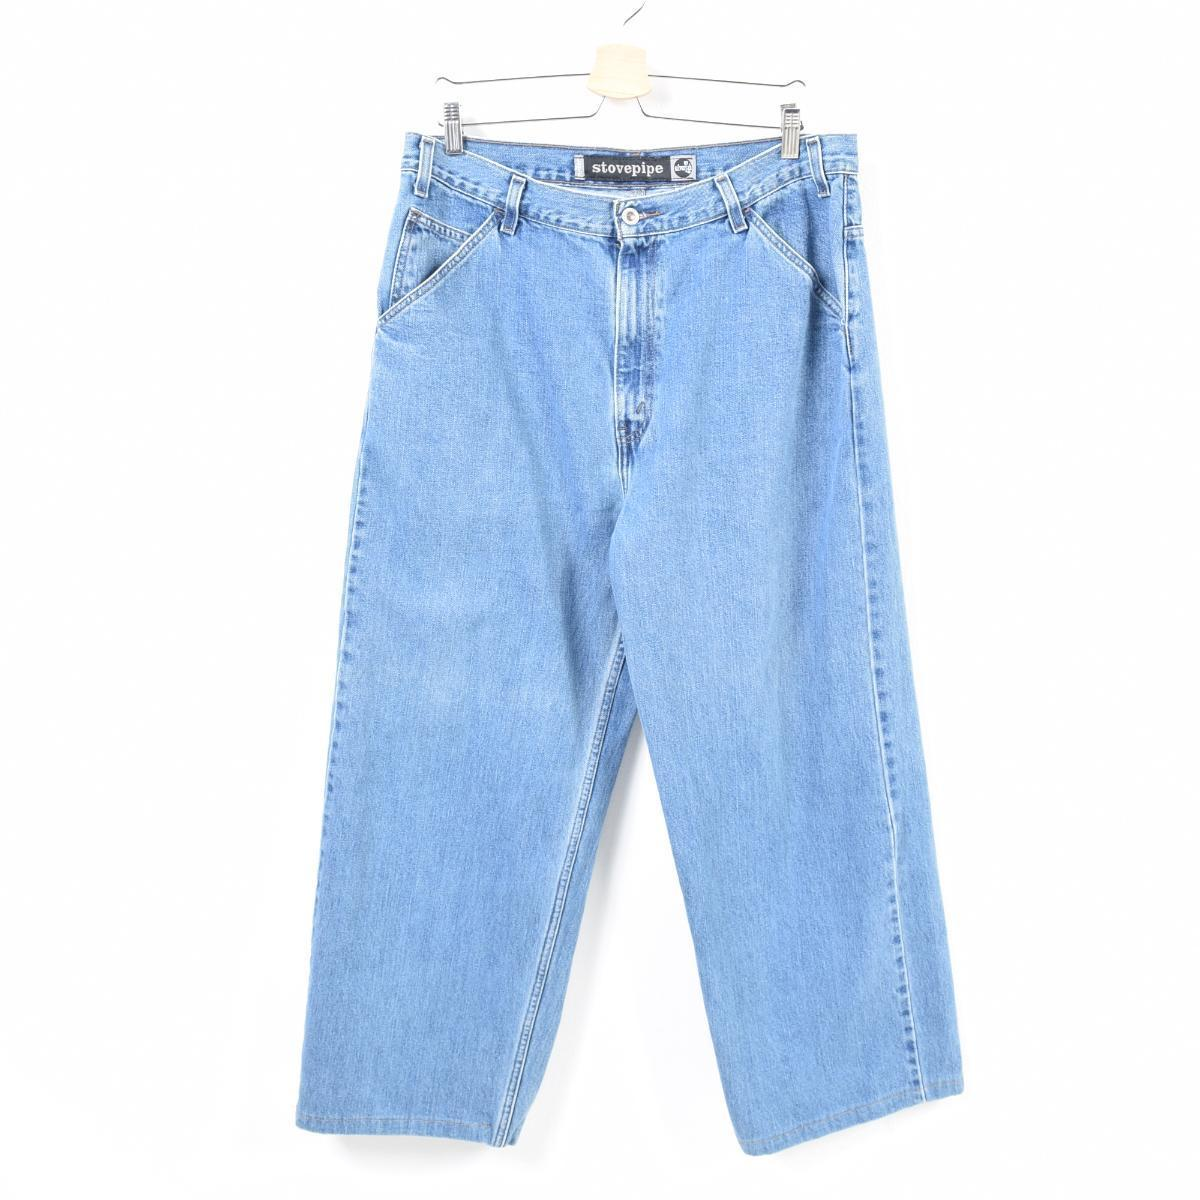 4634a9a14a96f 90s Levis Levi's SILVER TAB silver tab STOVEPIPE cropped length jeans denim  underwear men w37 /wao7394